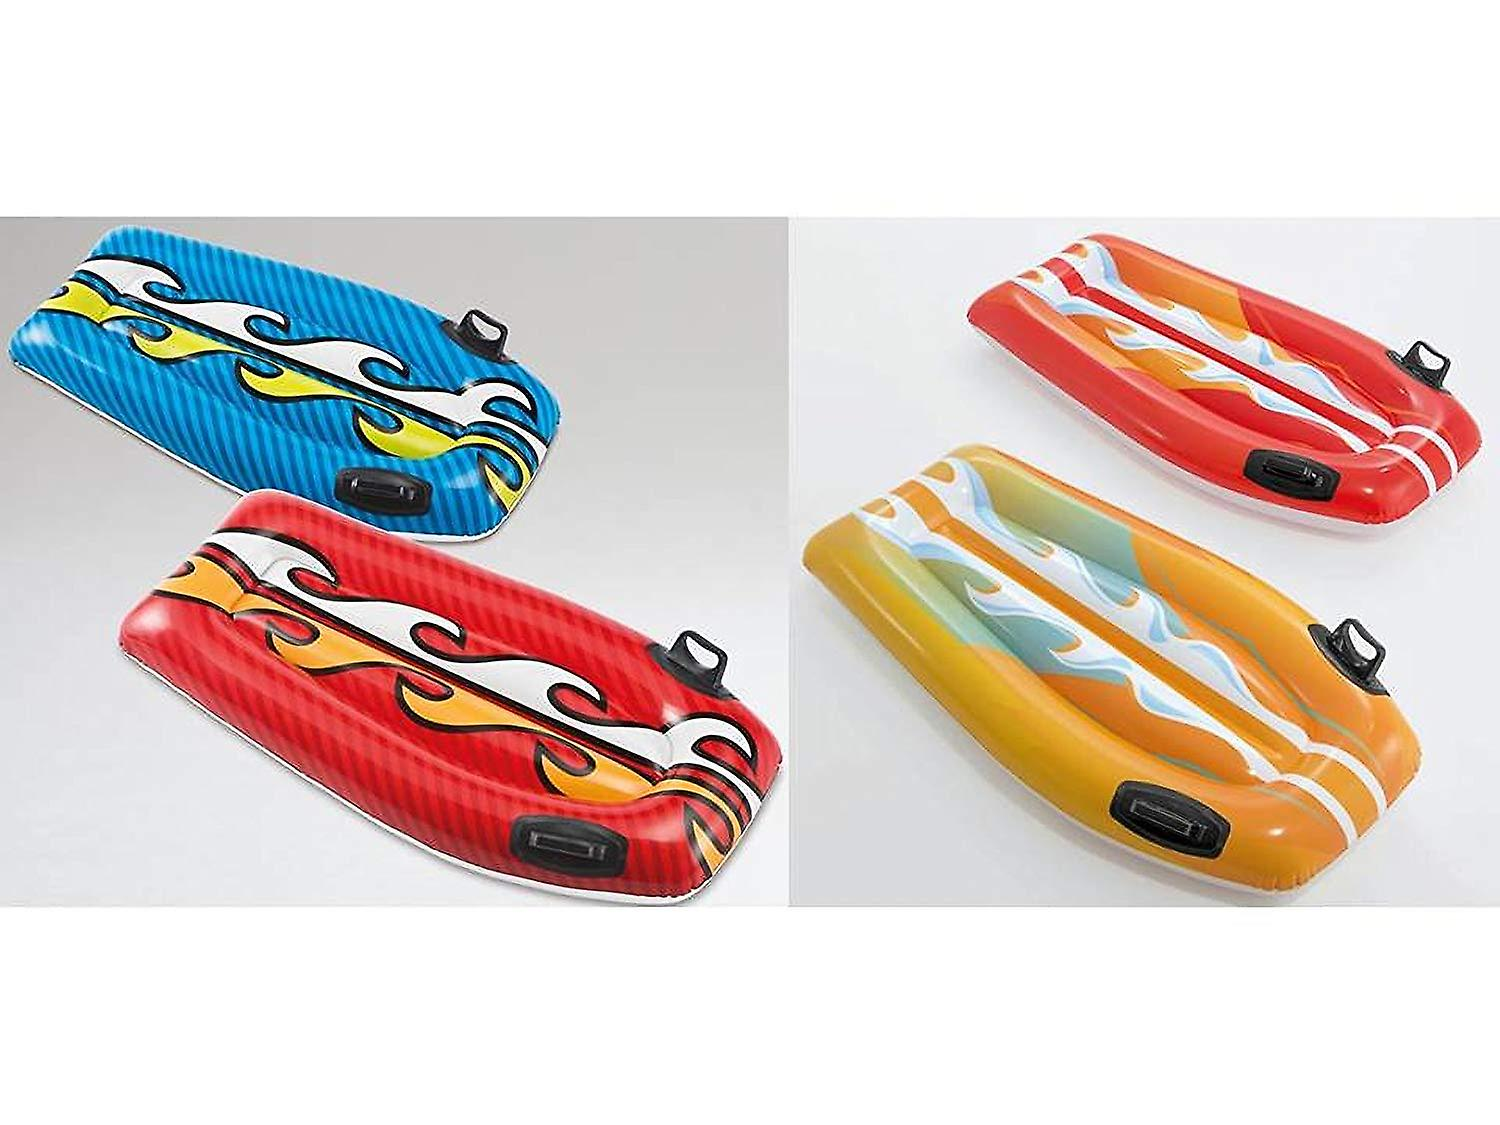 Intex Joy Riders Surf Beach Toy - Assorted Colours